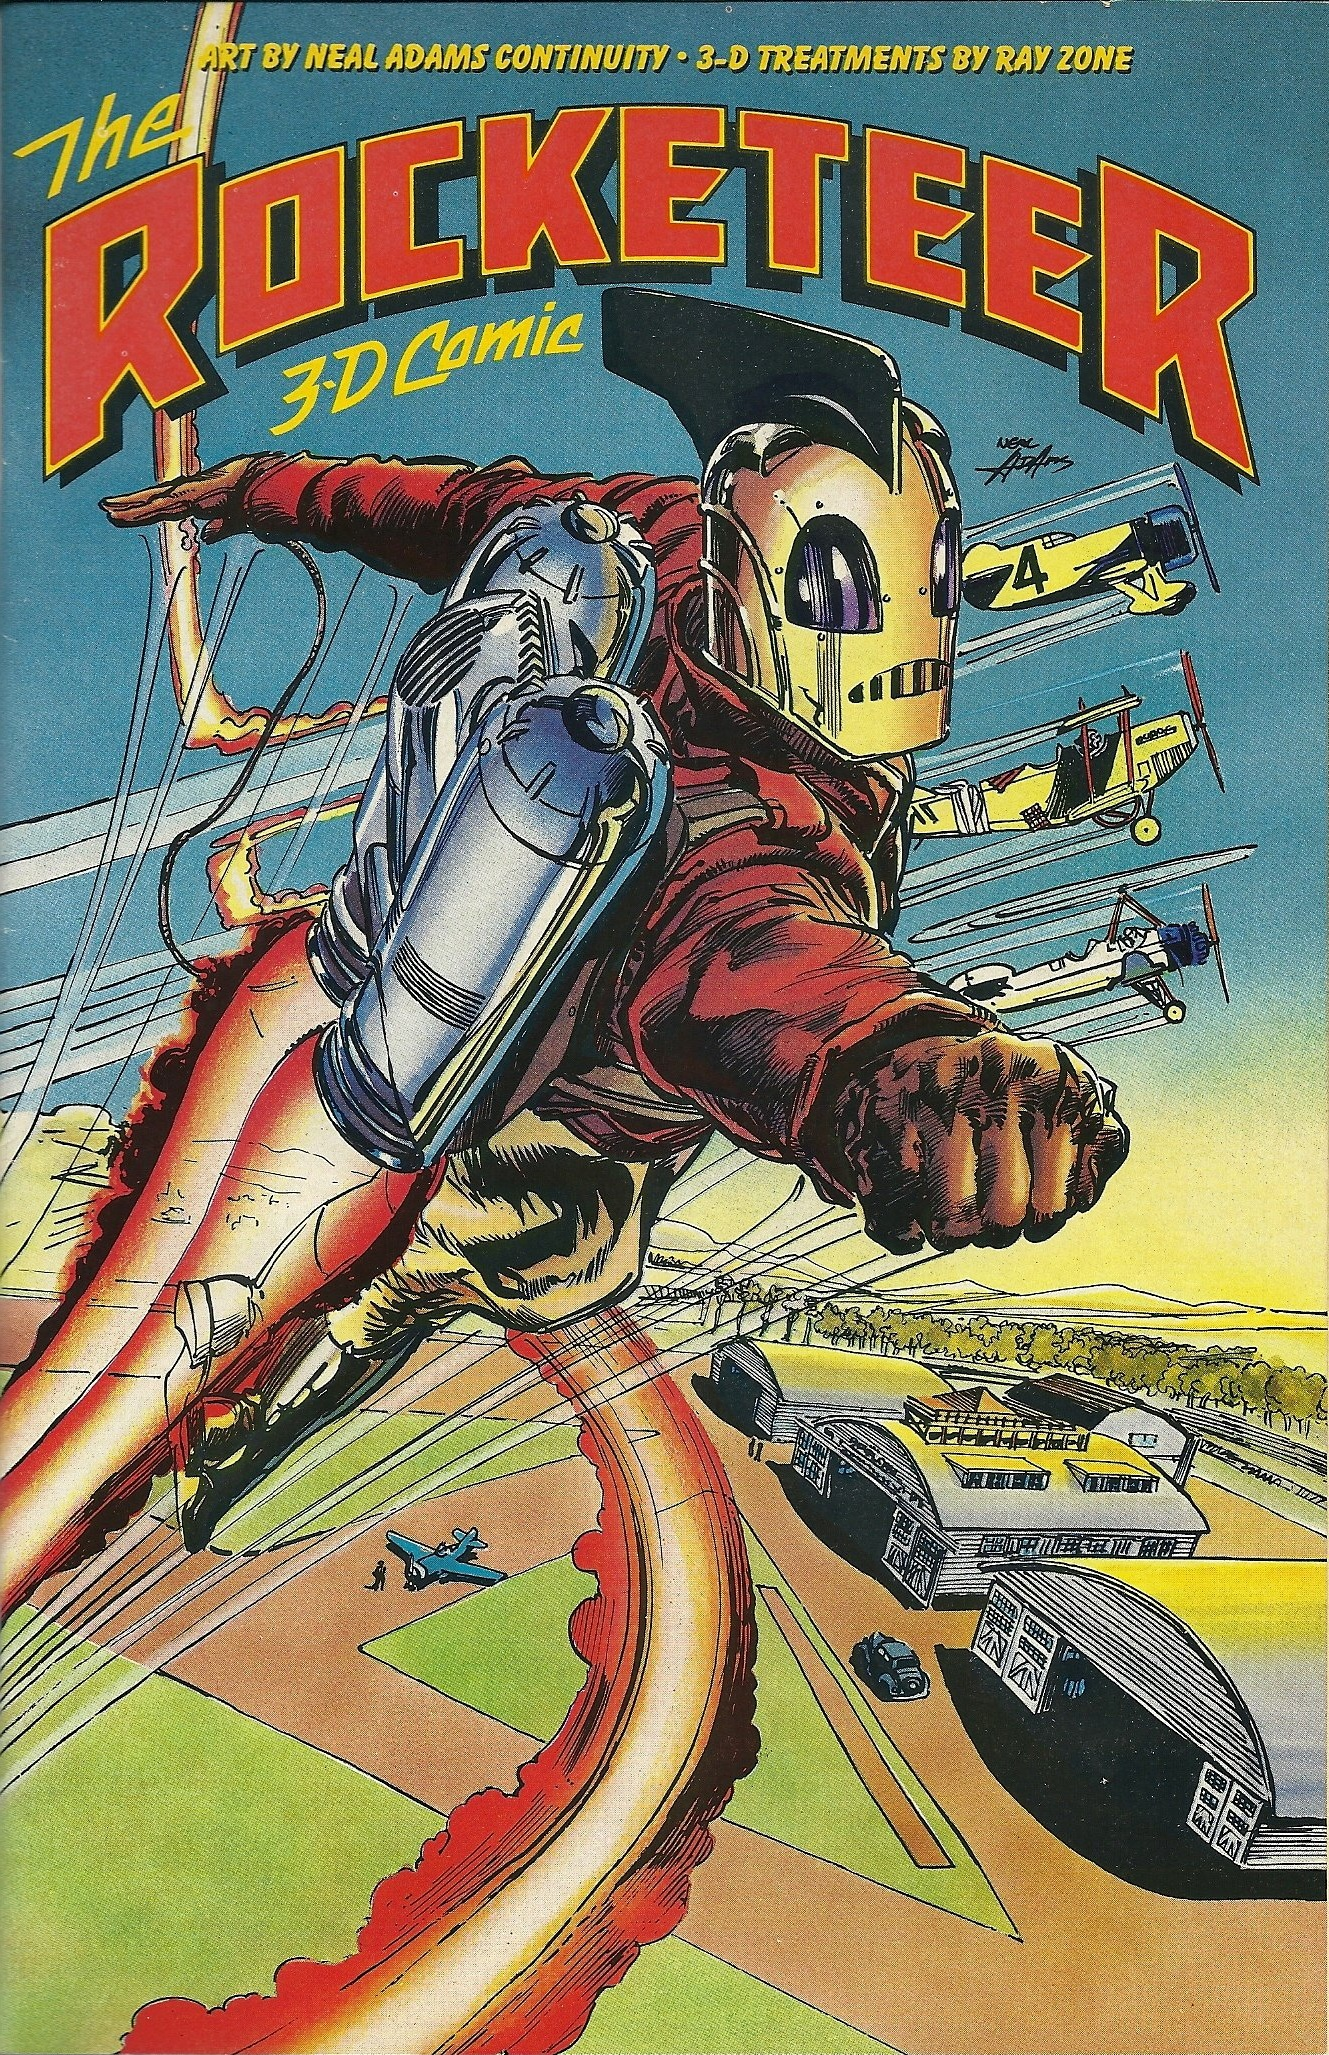 The Rocketeer 3D Comic (1991) #1, cover by Neal Adams.